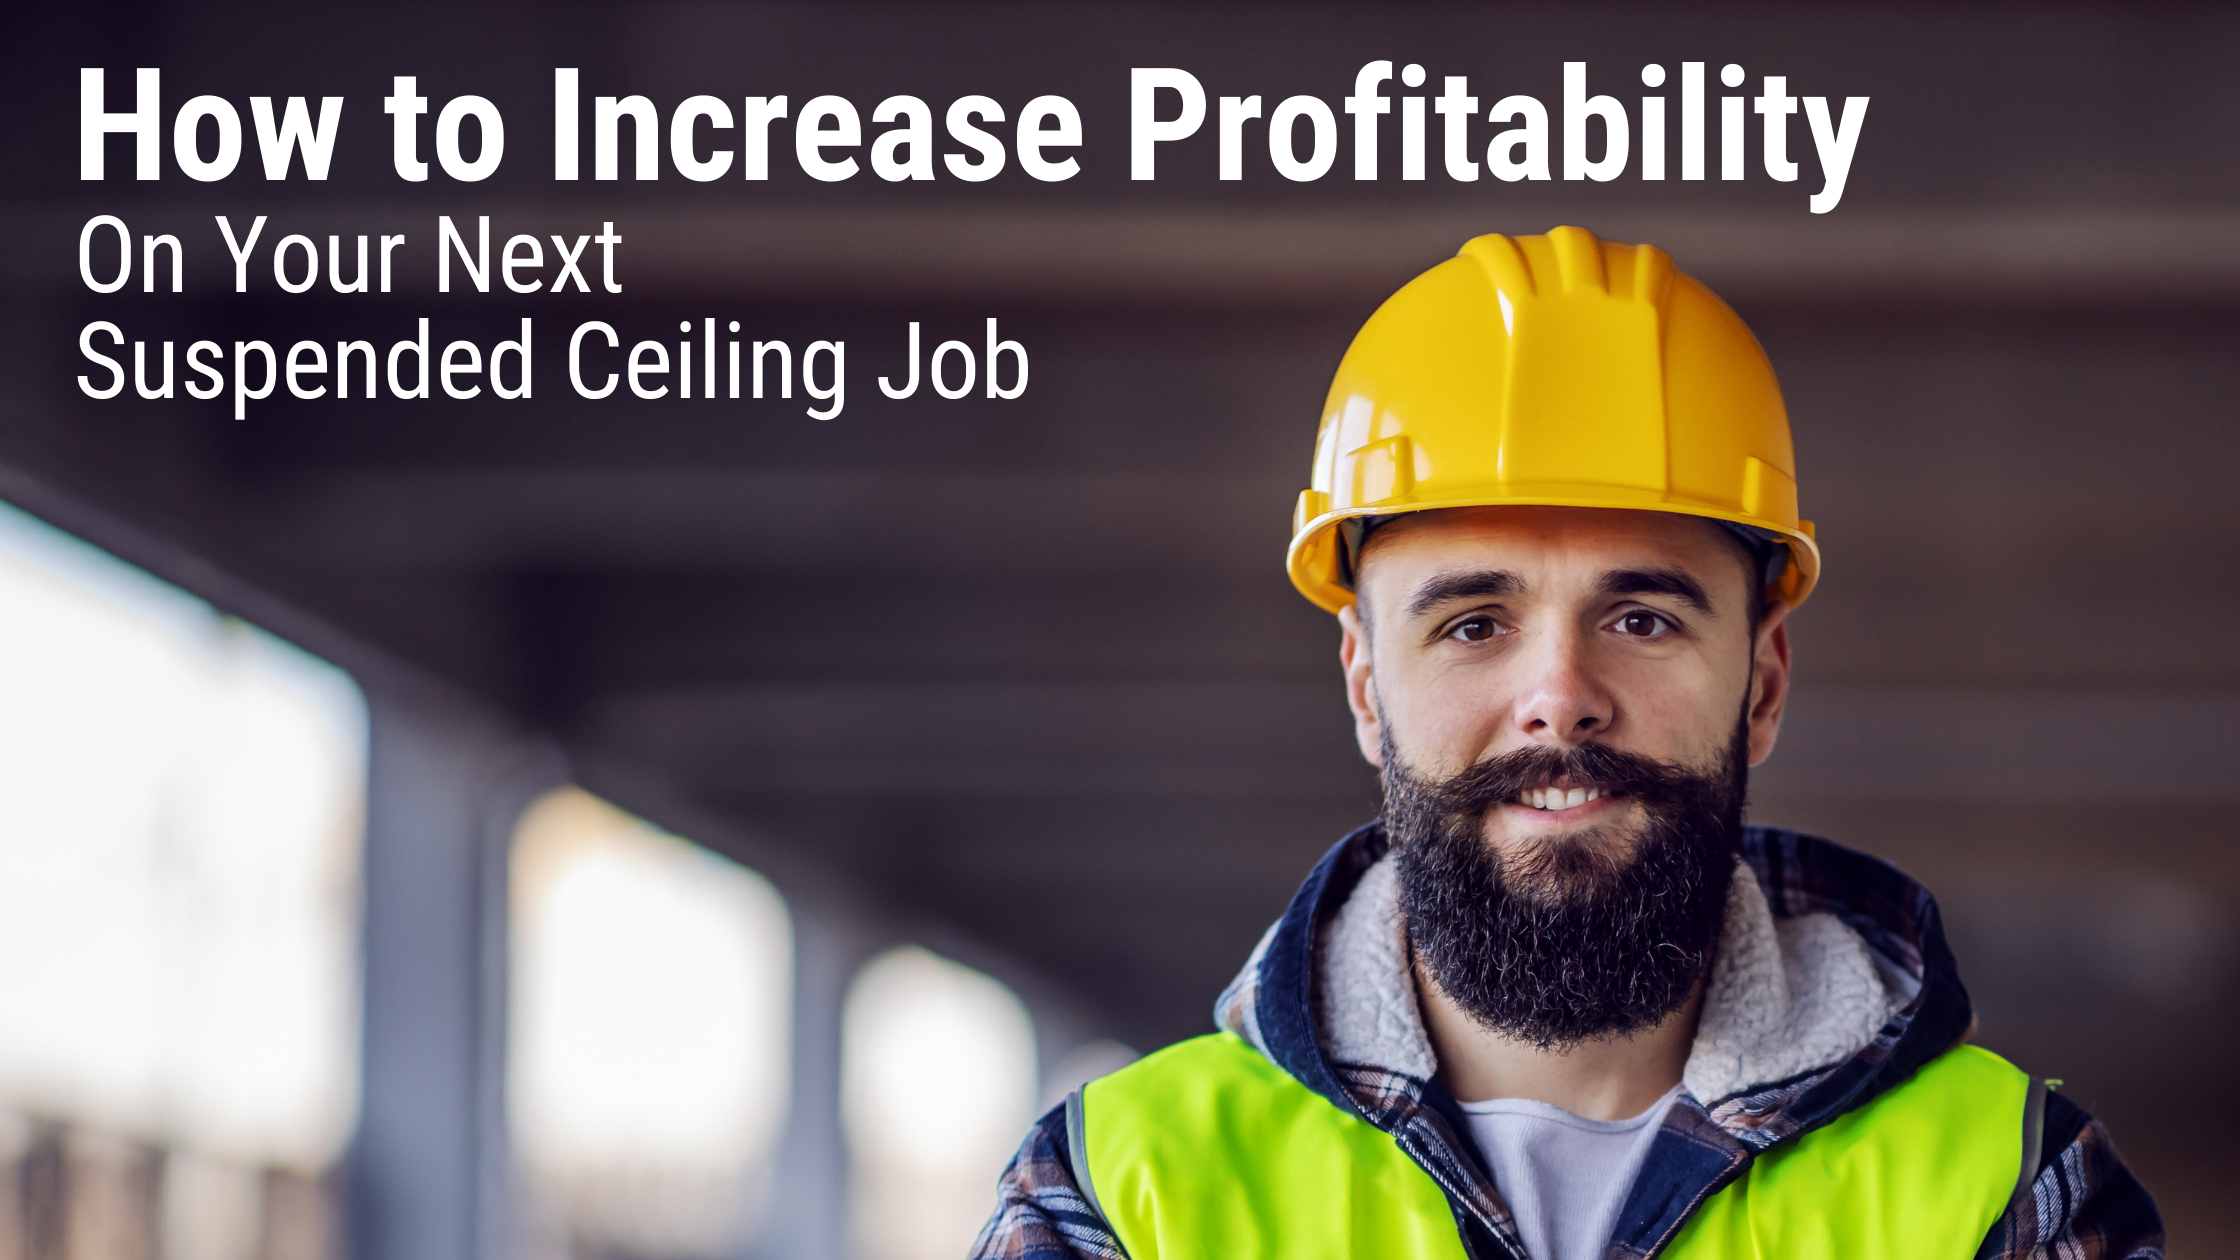 How to Increase Profitability on Your Next Suspended Ceiling Grid System Job